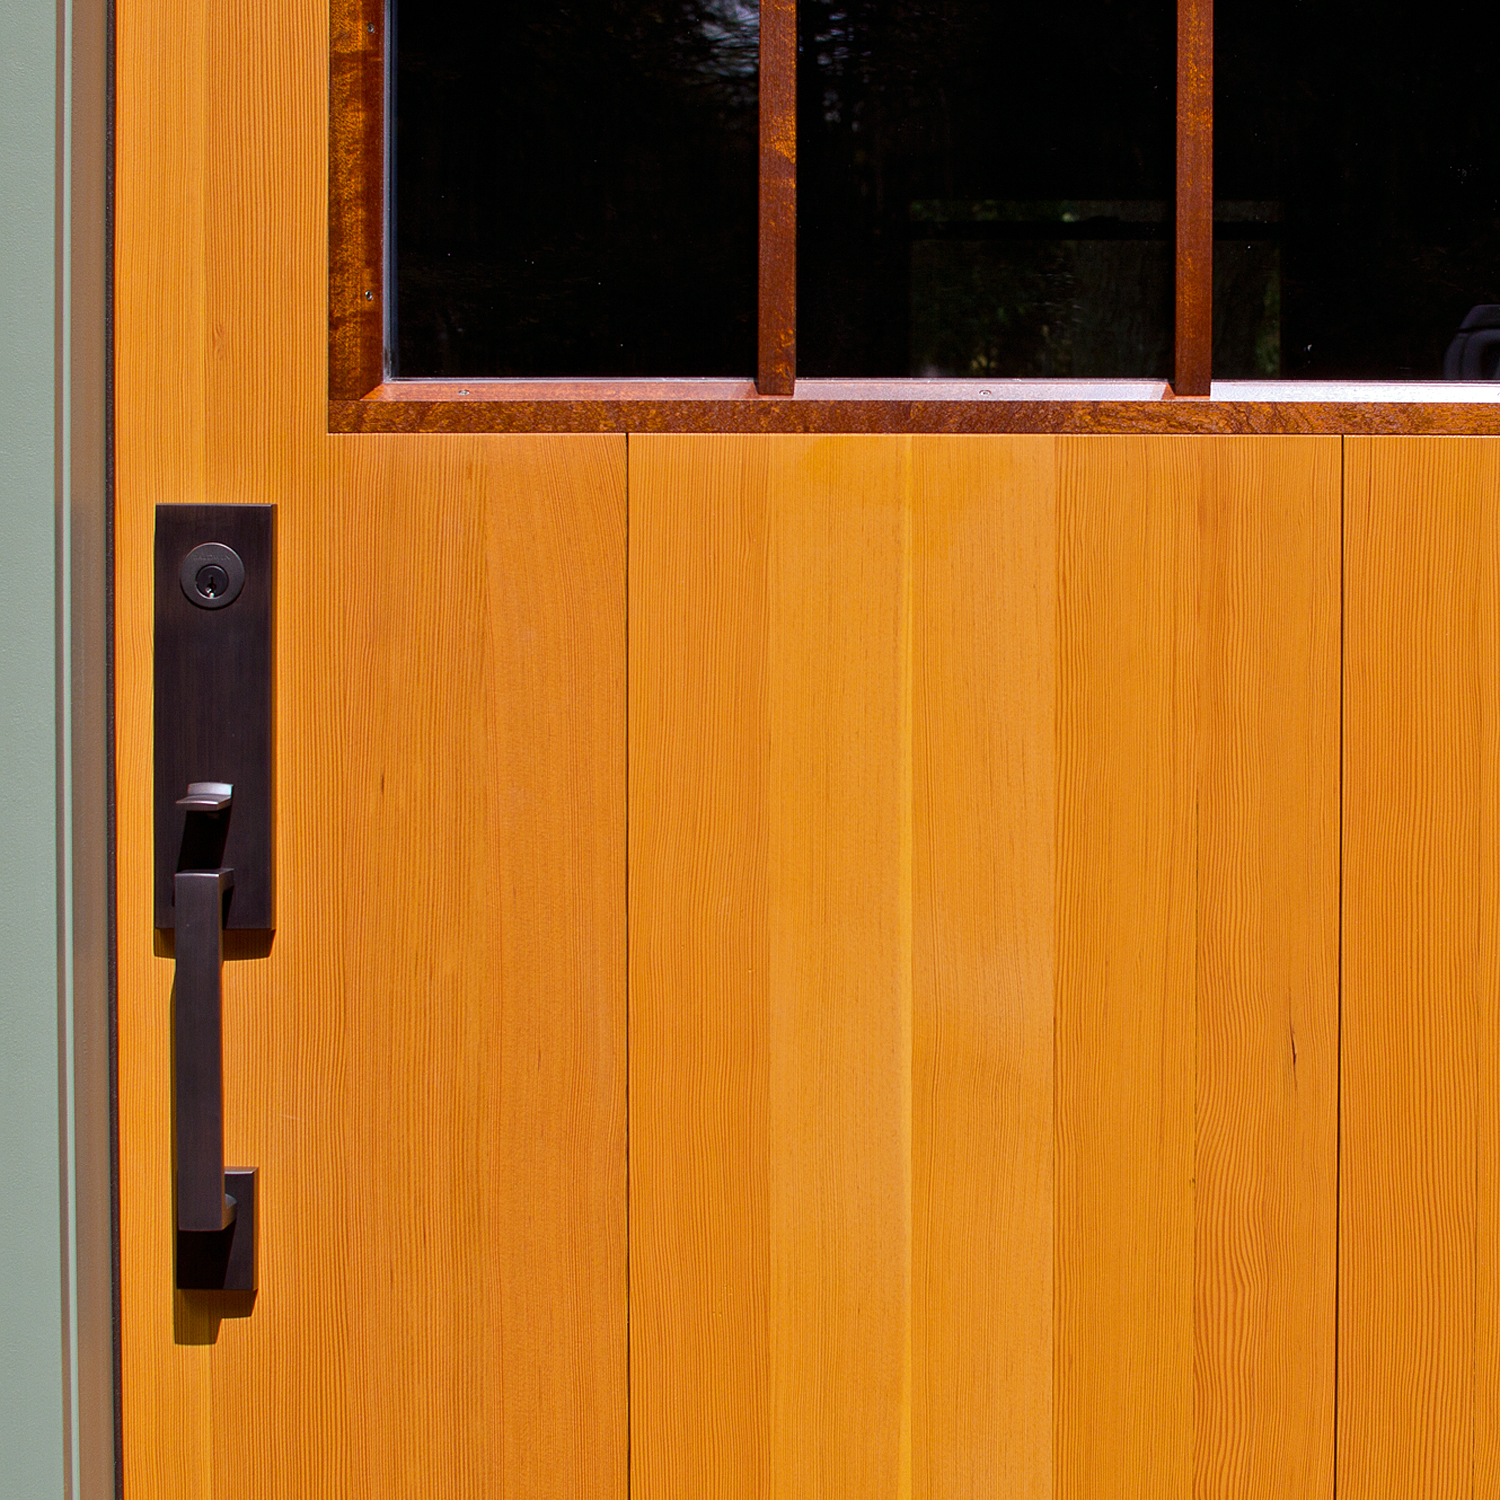 The door to the studio:a custom entry door made of Douglas-fir and mahogany. An example of creative design, fine detailing and impeccable craftsmanship.